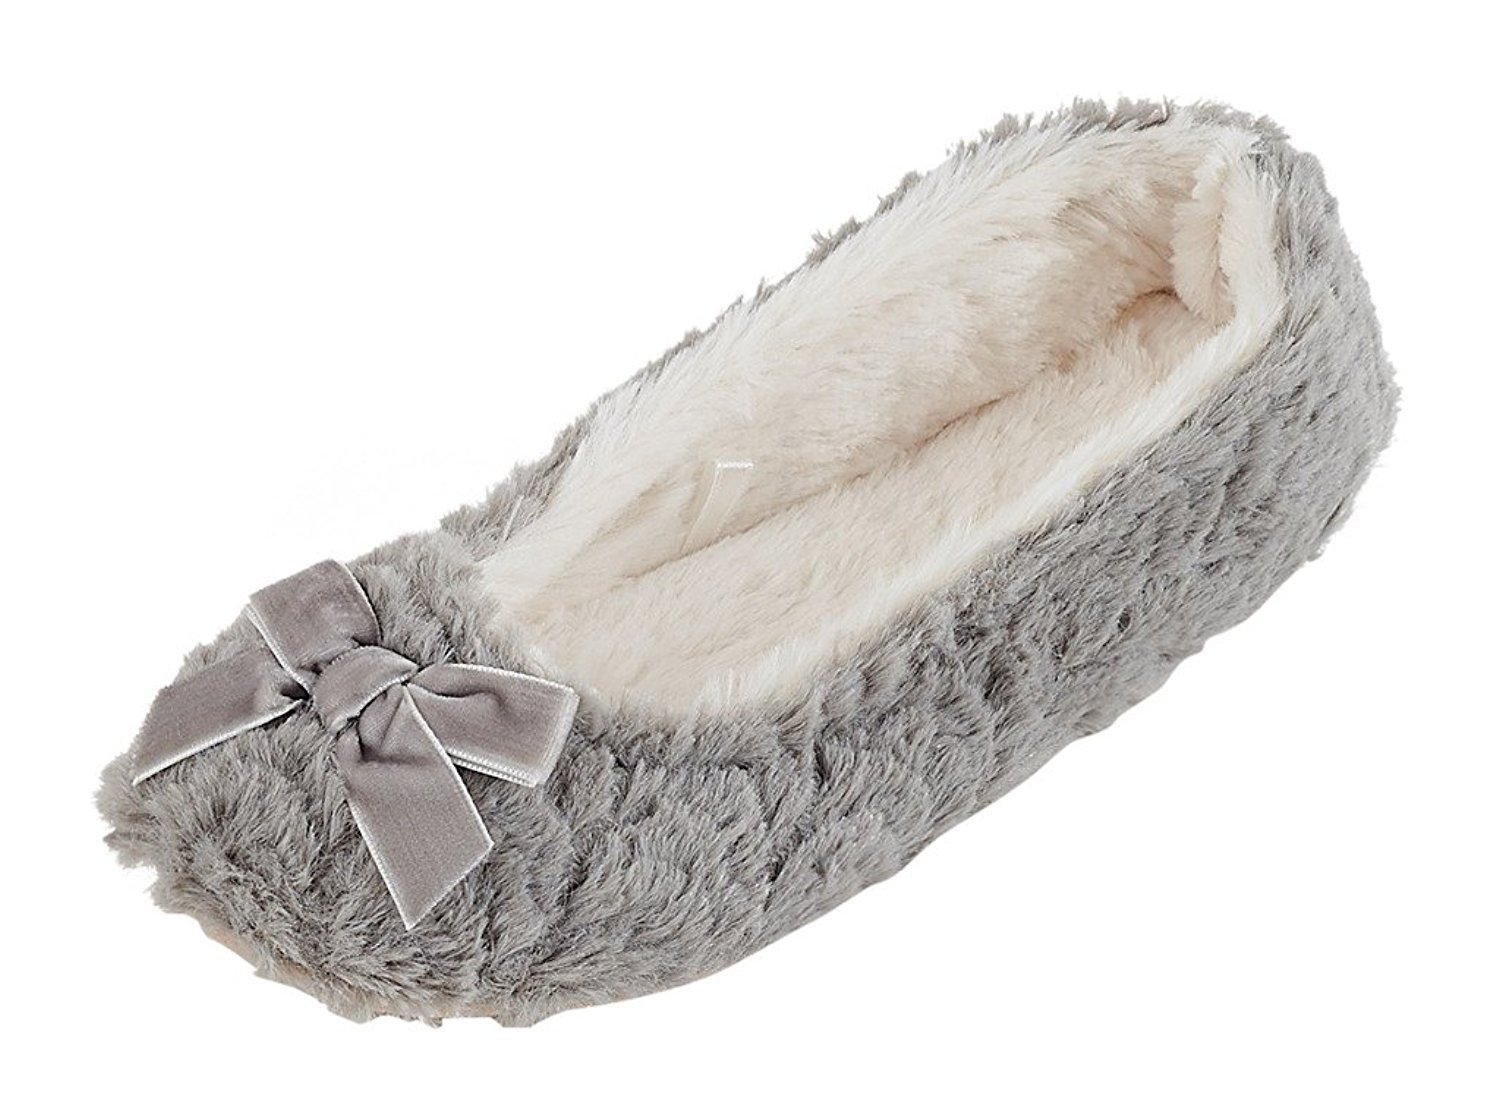 MIXIN Women's Ballerina Plush Soft Sole Indoor Slippers Grey US Size 8